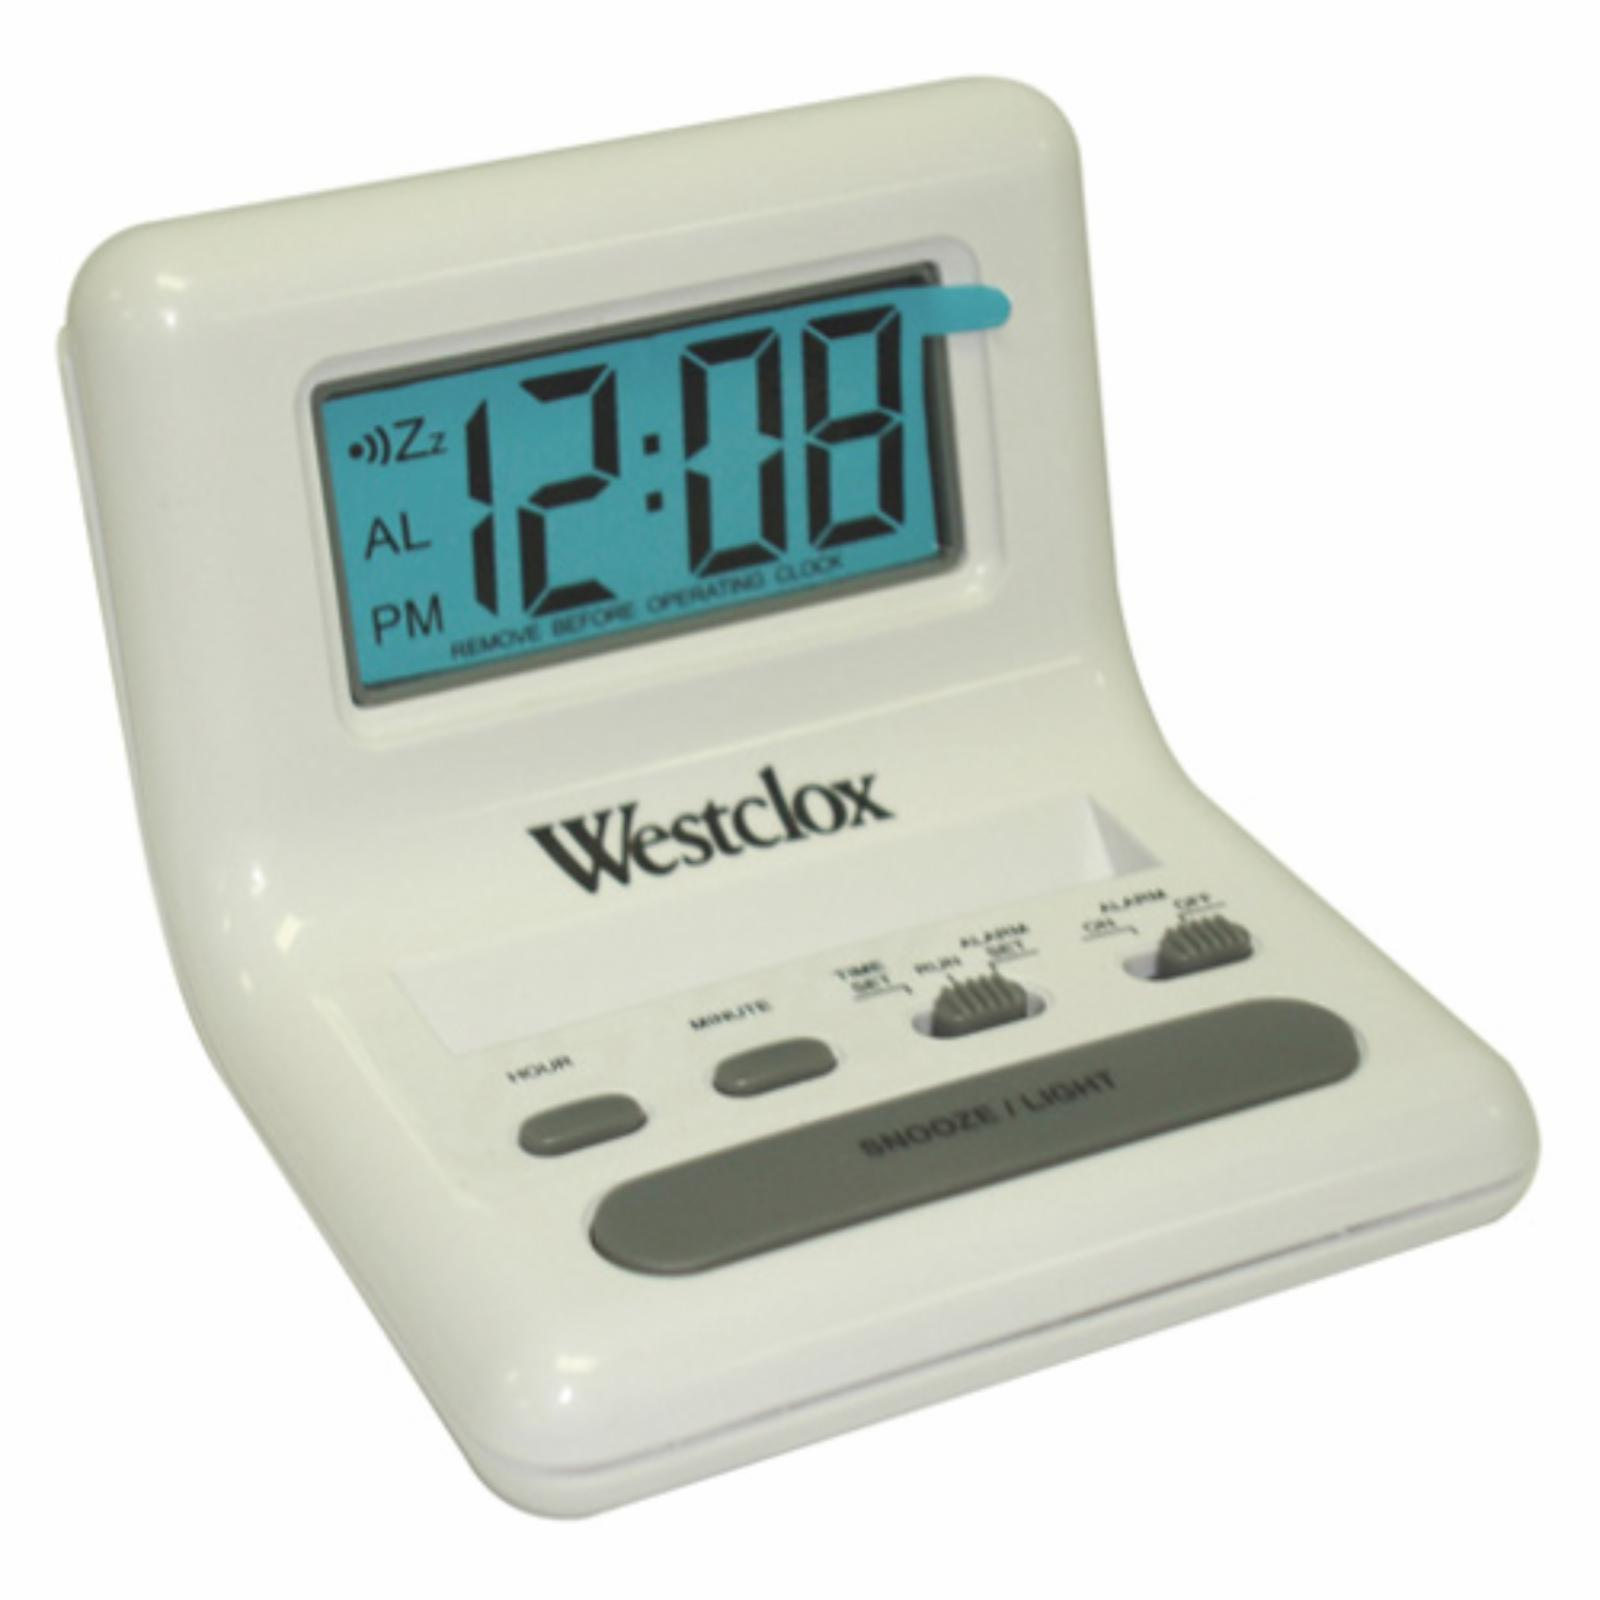 Westclox LCD Display Bedside Alarm Clock White - 47539A